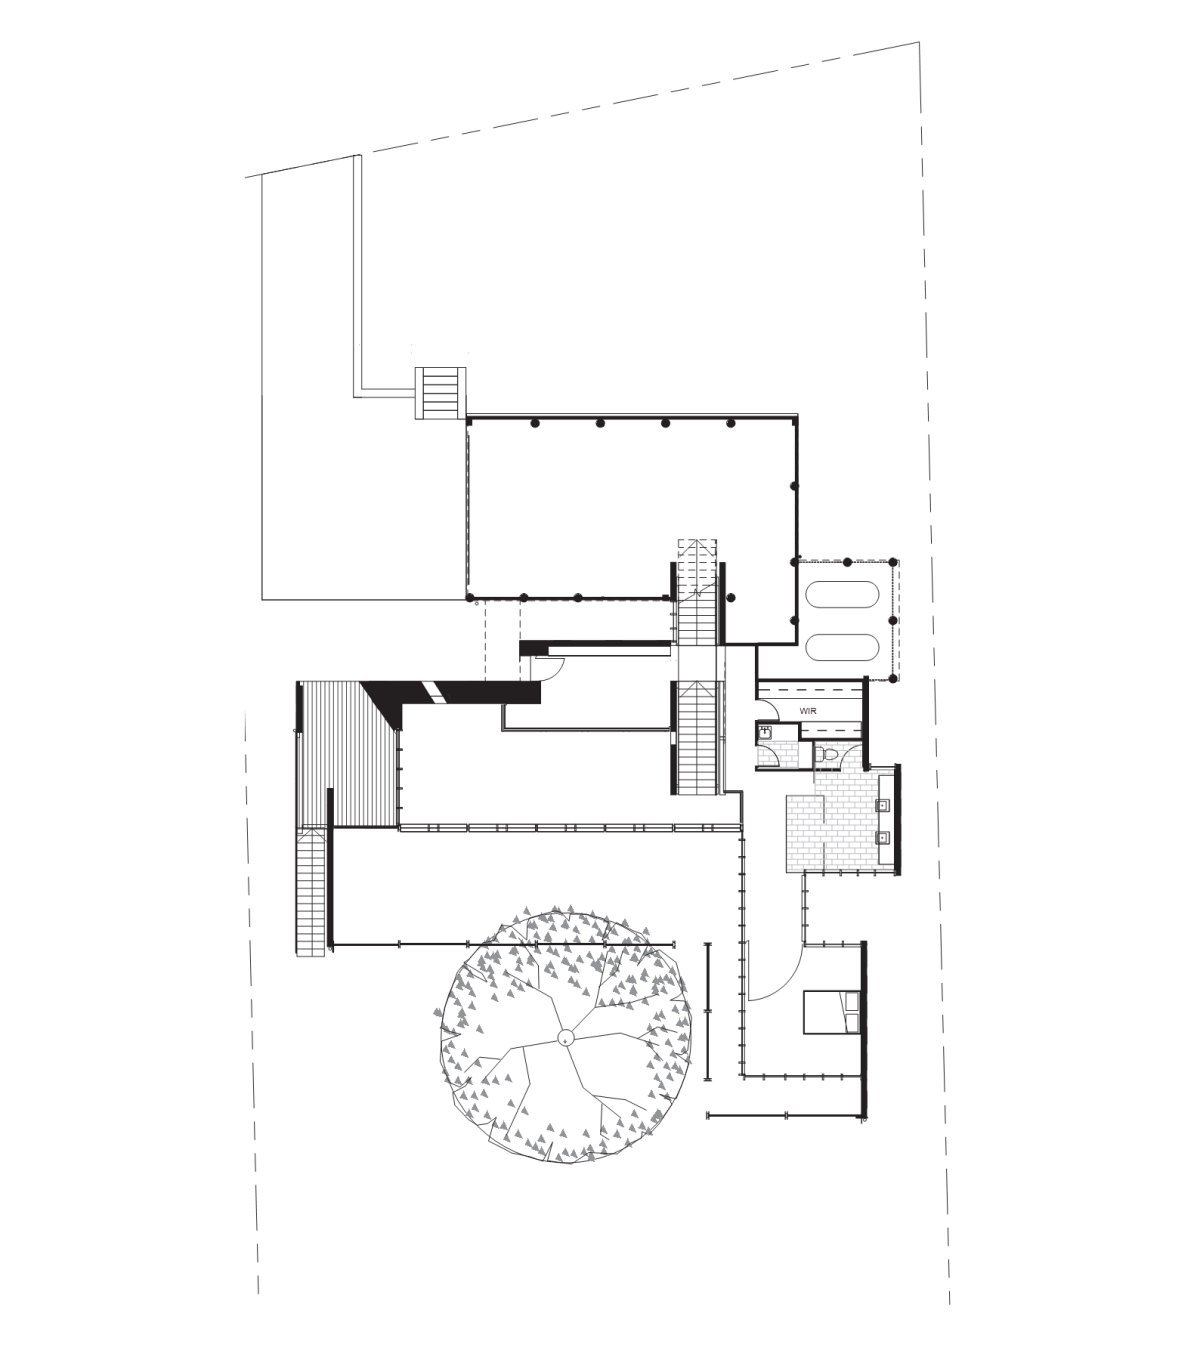 First Floor Plan, Taringa House in Brisbane, Australia